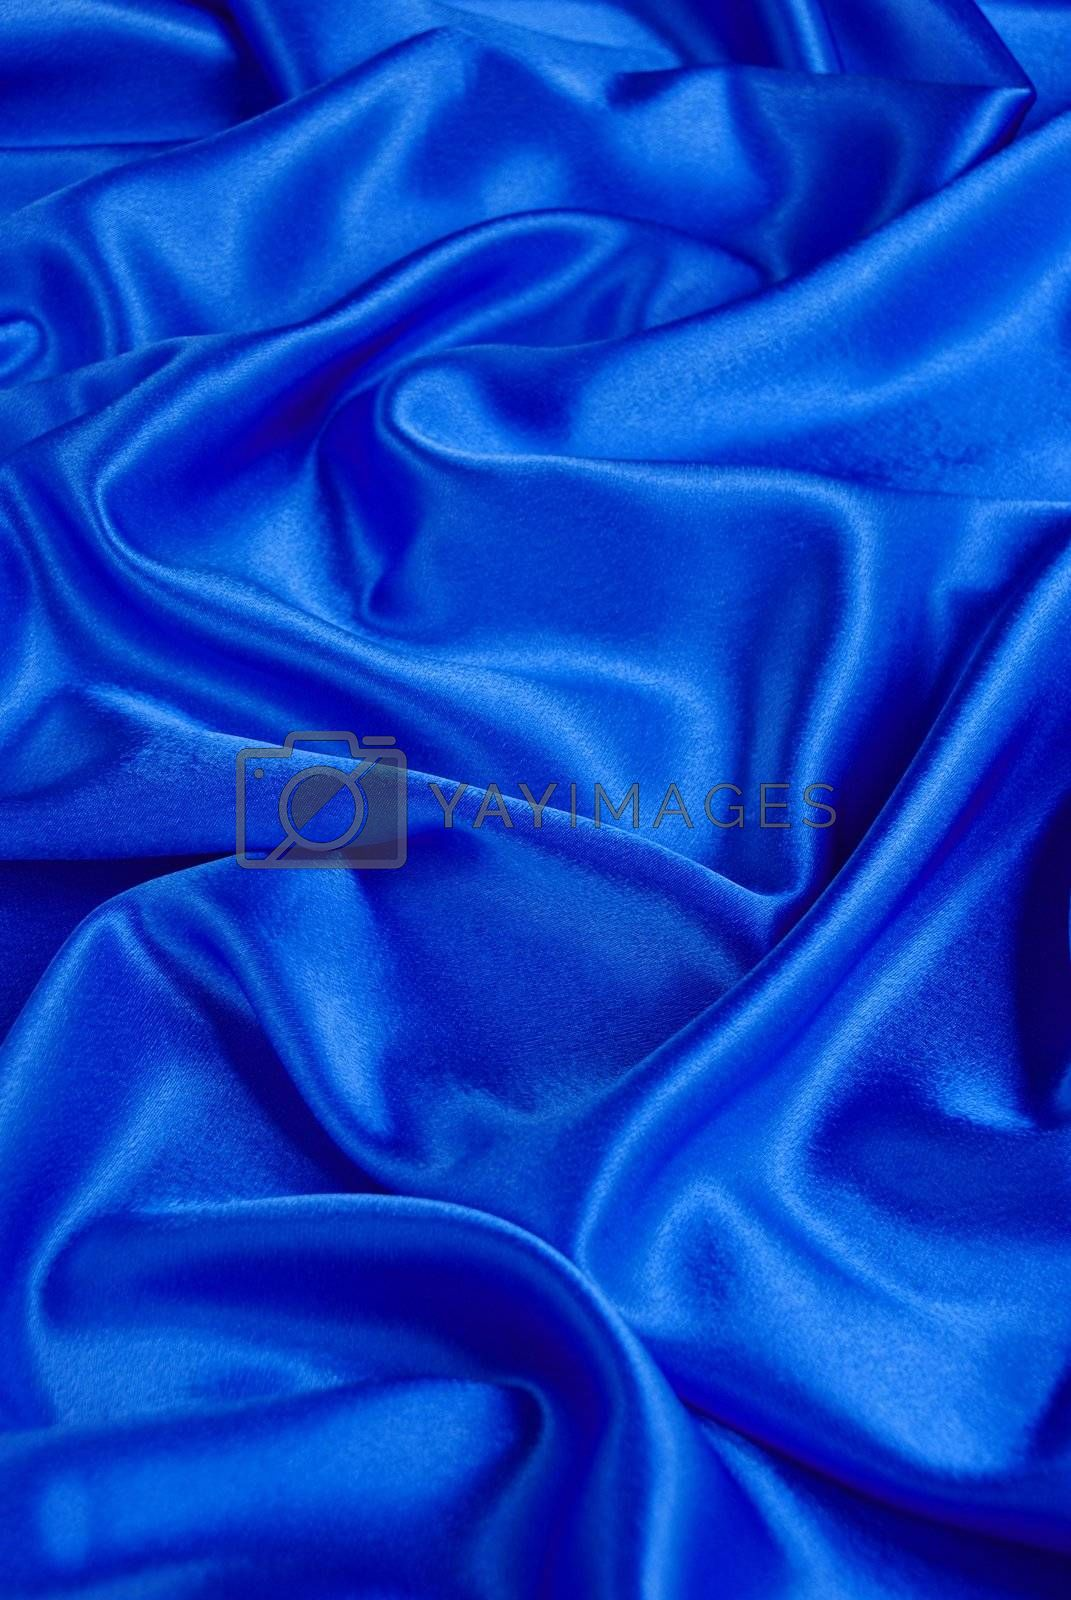 Blue satin with a folds